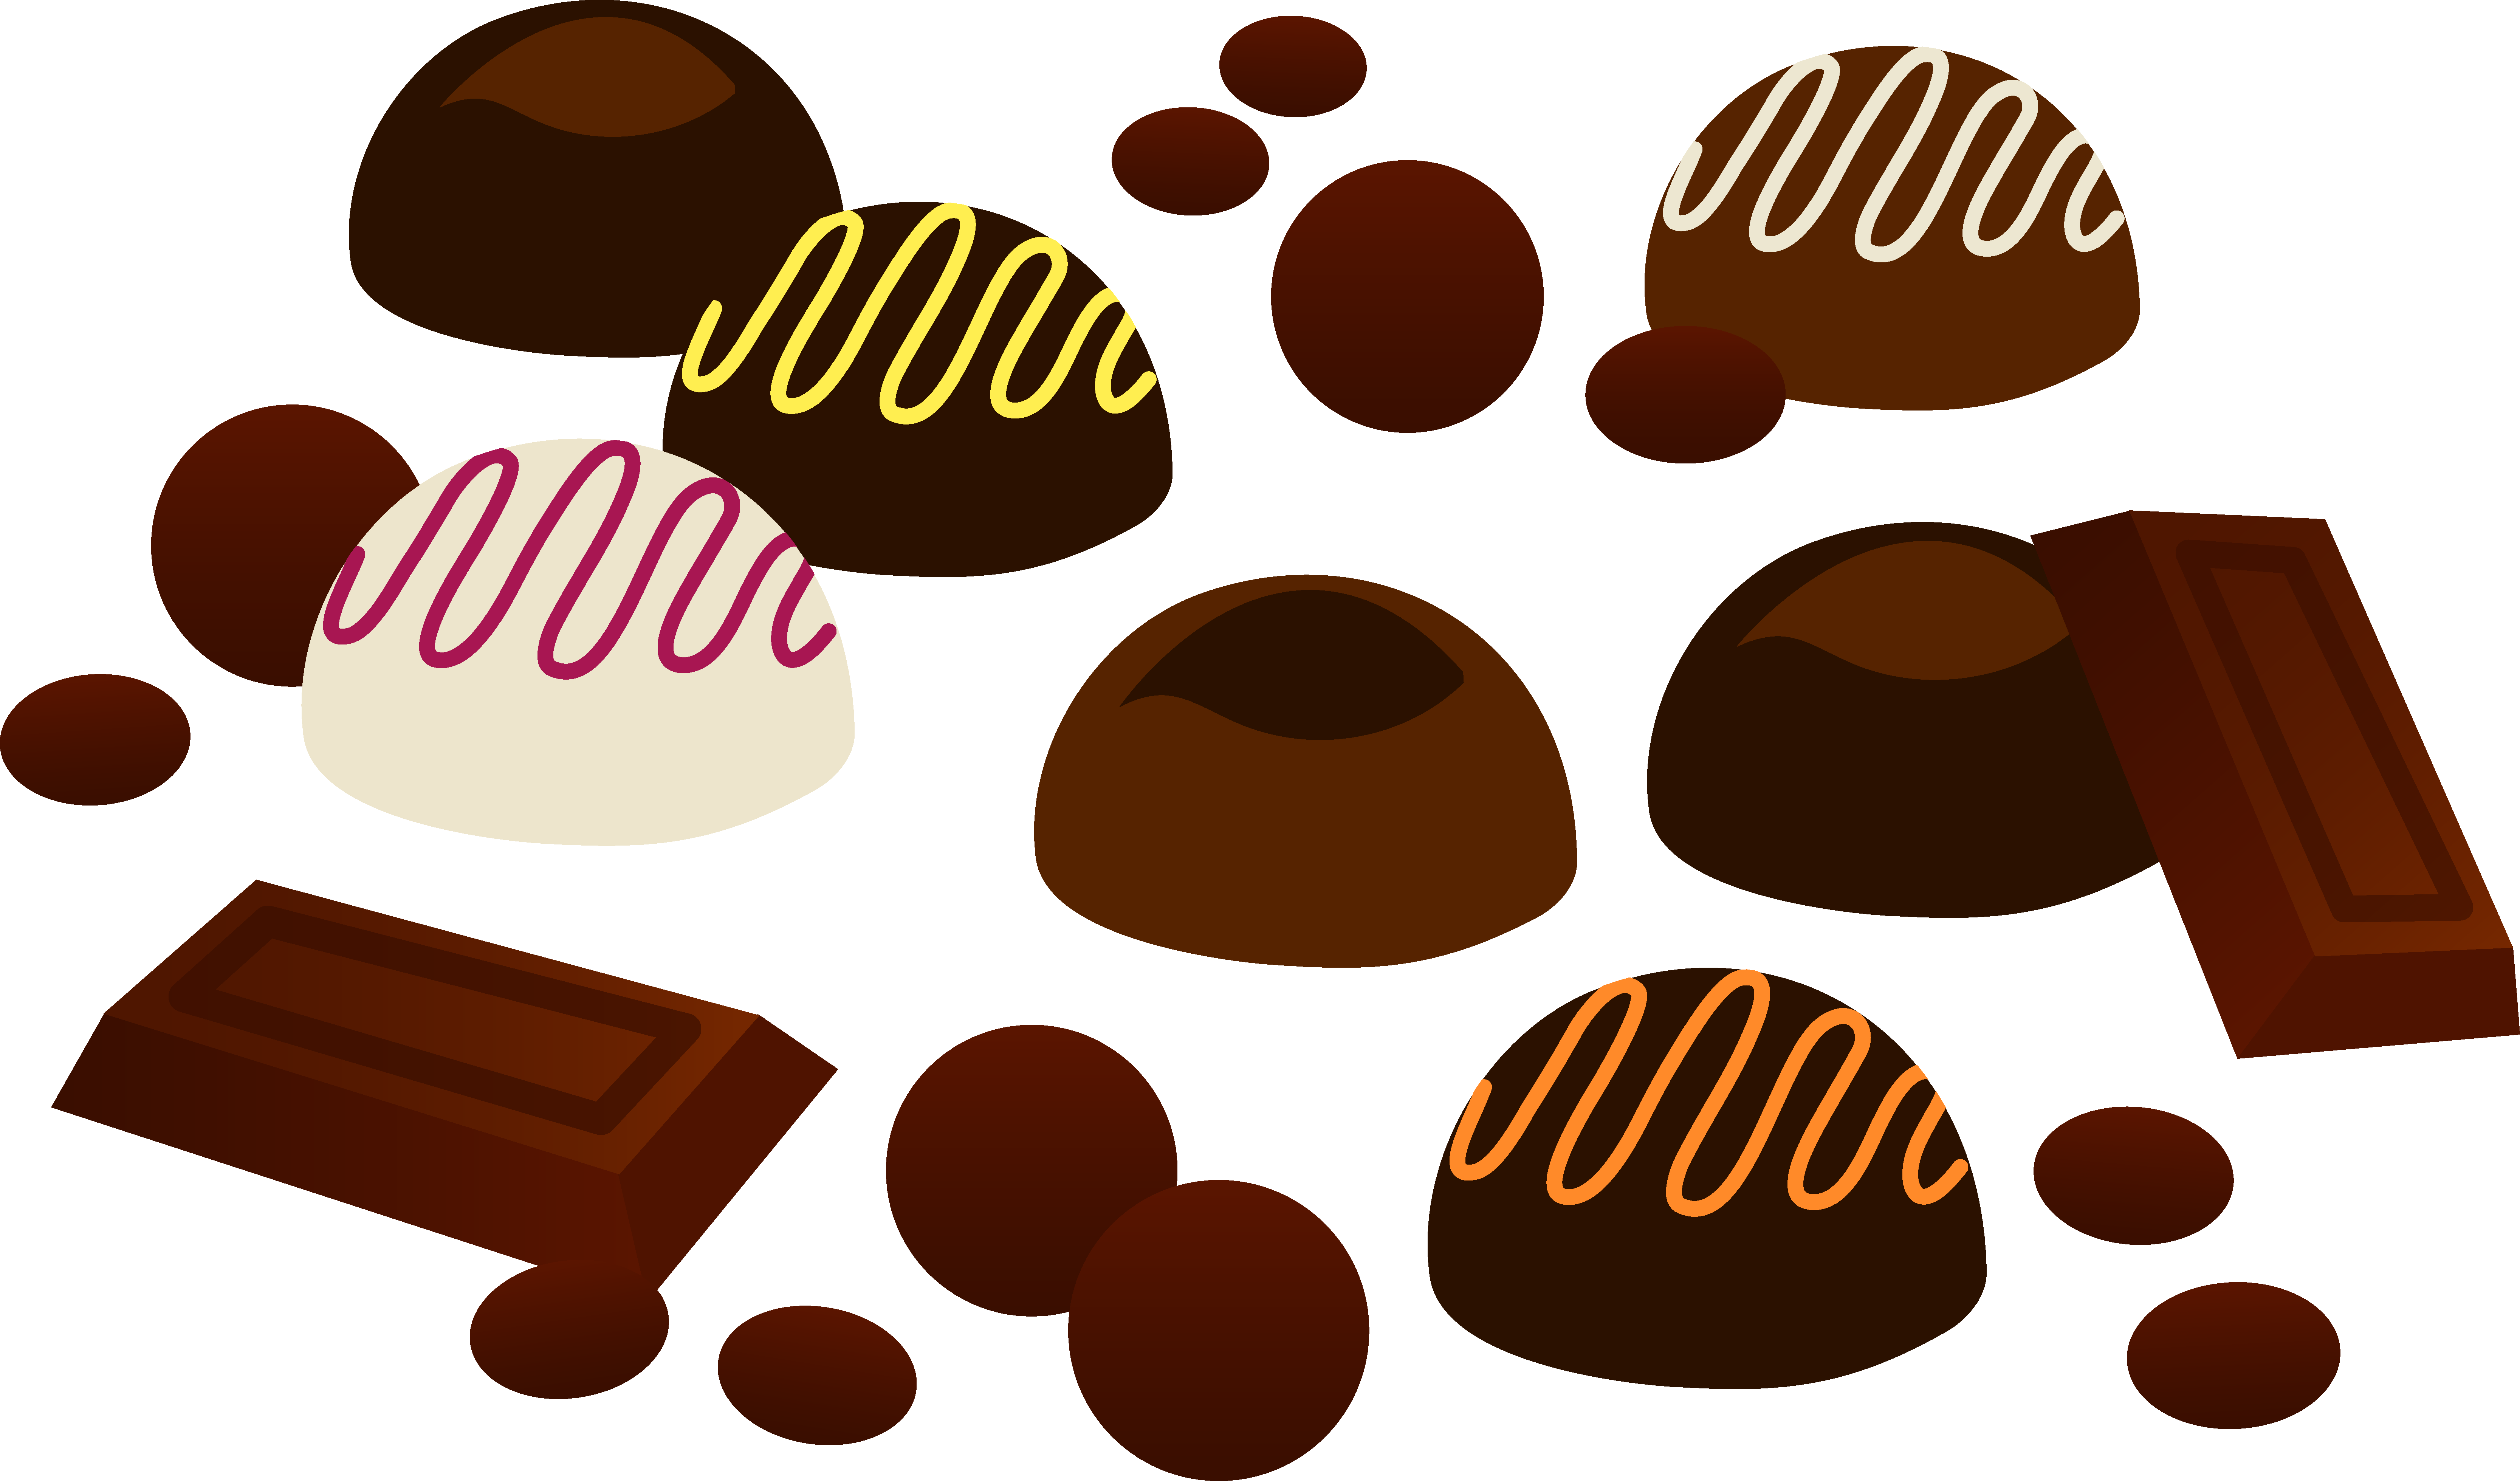 Chocolate clipart chocolate lollipop. Drawing at getdrawings com